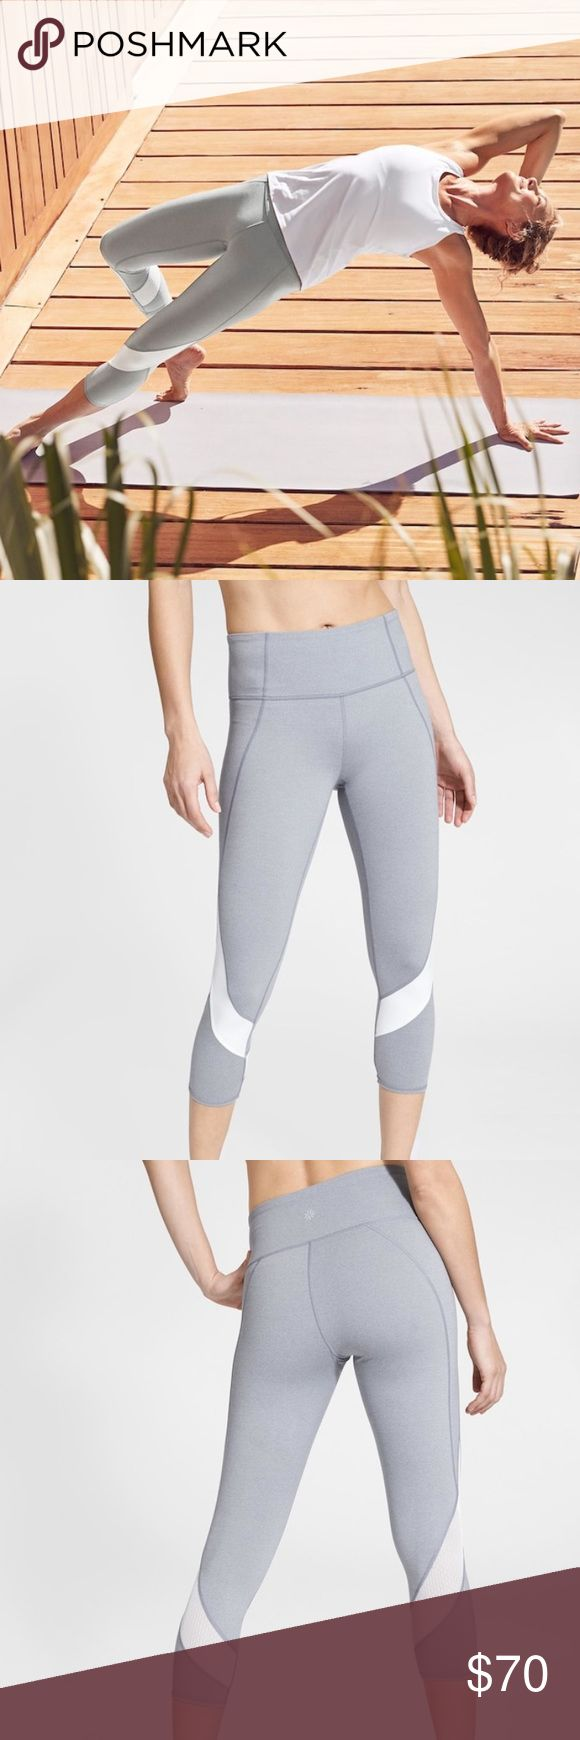 Athleta Colorblock Mesh Salutation Capri XS NWT  Size XS *the grey is slightly darker in person (as shown in my photo) rather than how light they look in the stock photo.   Capri made from Powervita fabric to deliver unbelievable softness and lightweight compression, with mesh panels for added breathability and an Unpinchable, high-rise waistband for smooth coverage. INSPIRED FOR: yoga, studio workouts Mesh panels for extra ventilation Hidden key envelope pocket Breathable CoolMax® crotch…